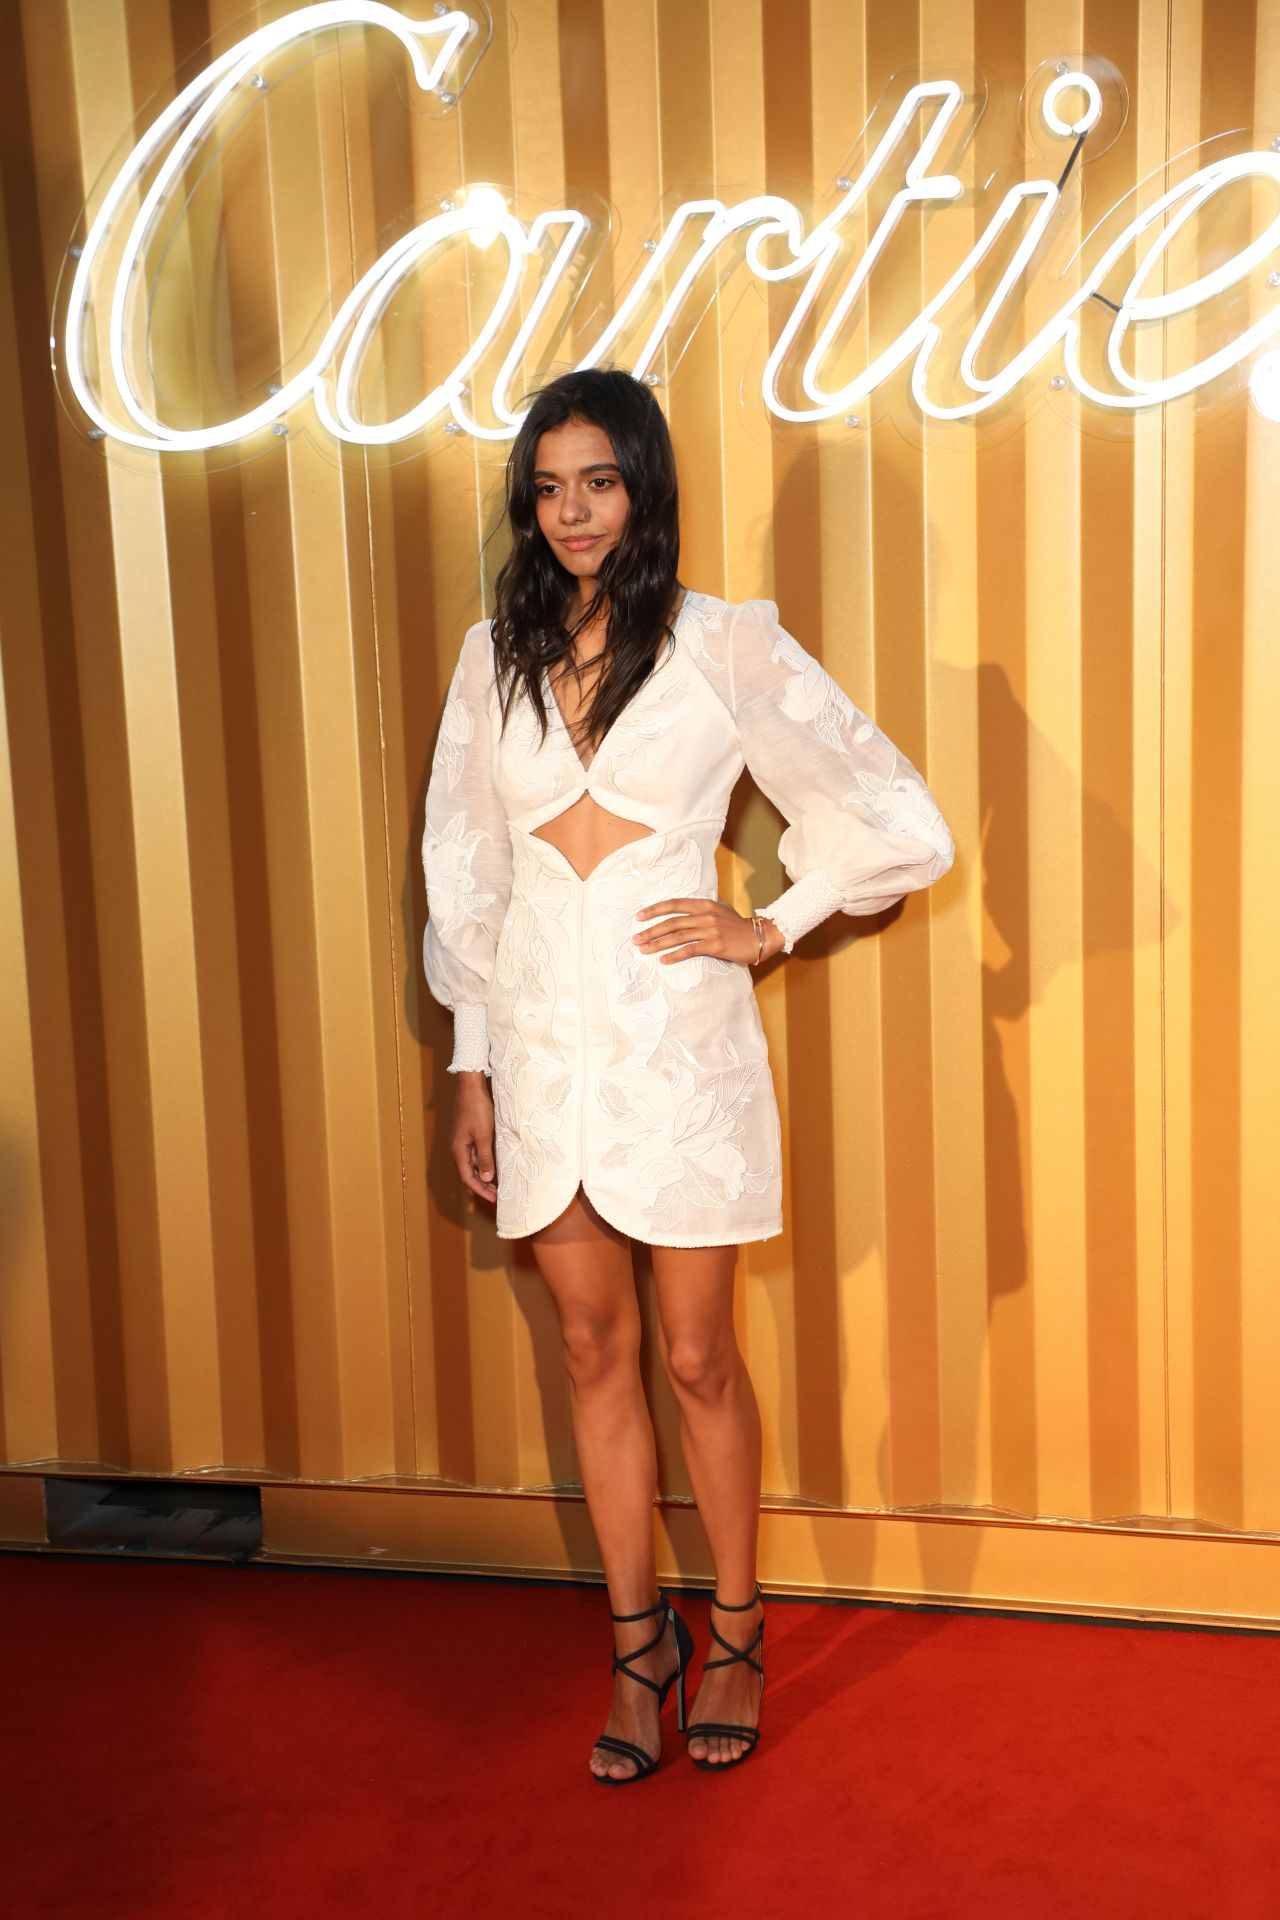 Celebrity Madeleine Madden nude photos 2019